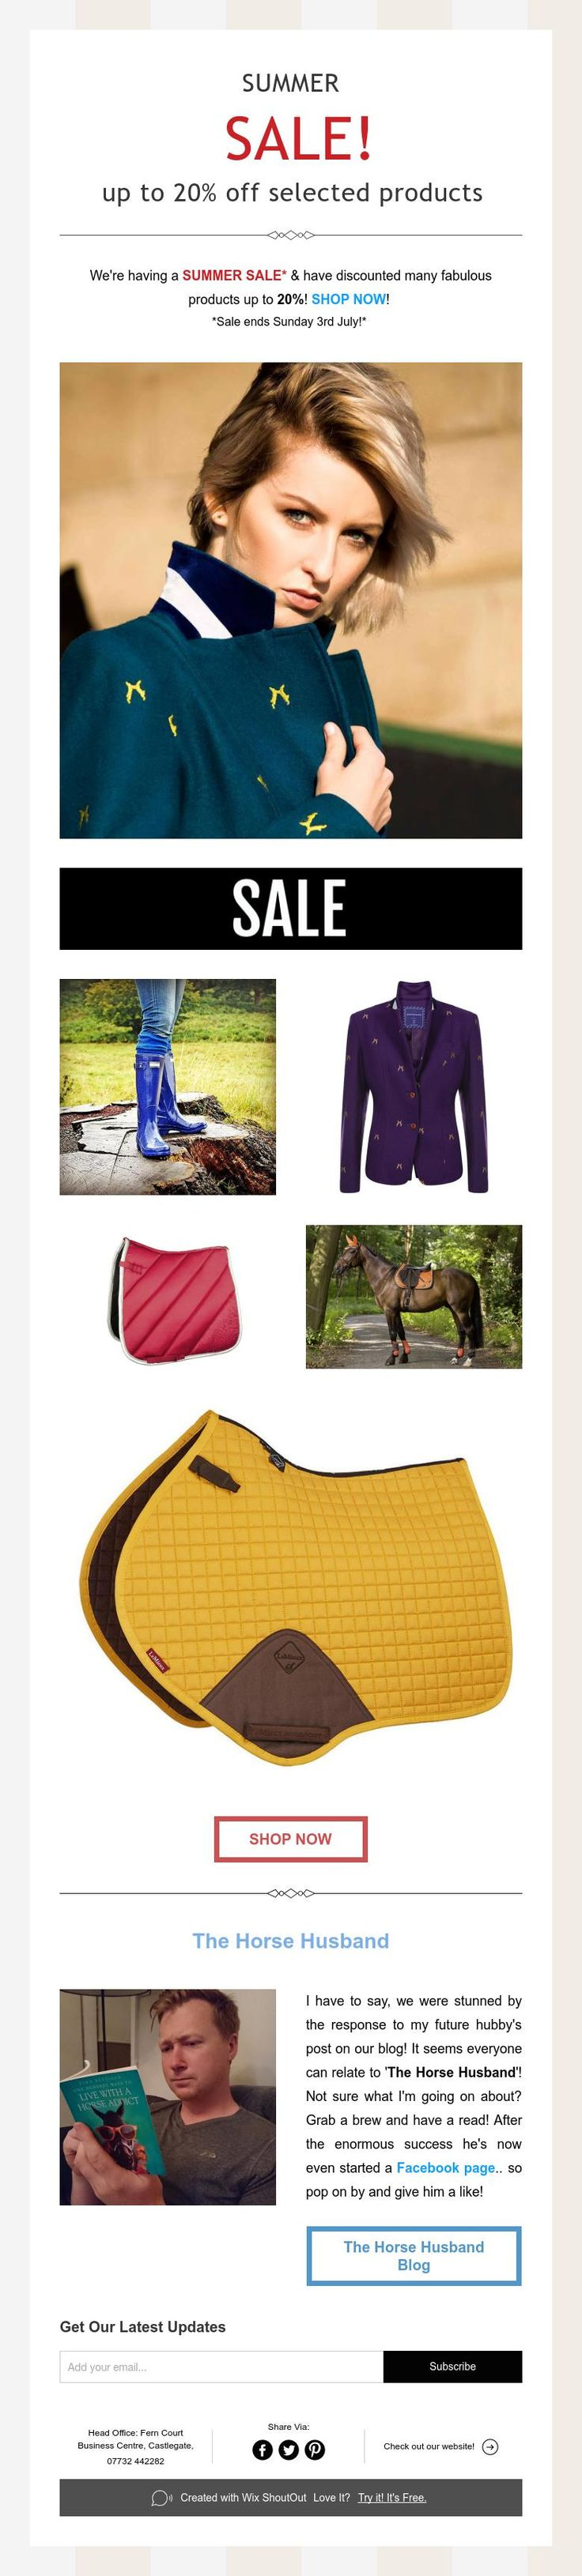 SUMMER  SALE!  up to 20% off selected products!  Grab a bargain NOW! #sale #lofthouseequestrian #horserider #tackshop